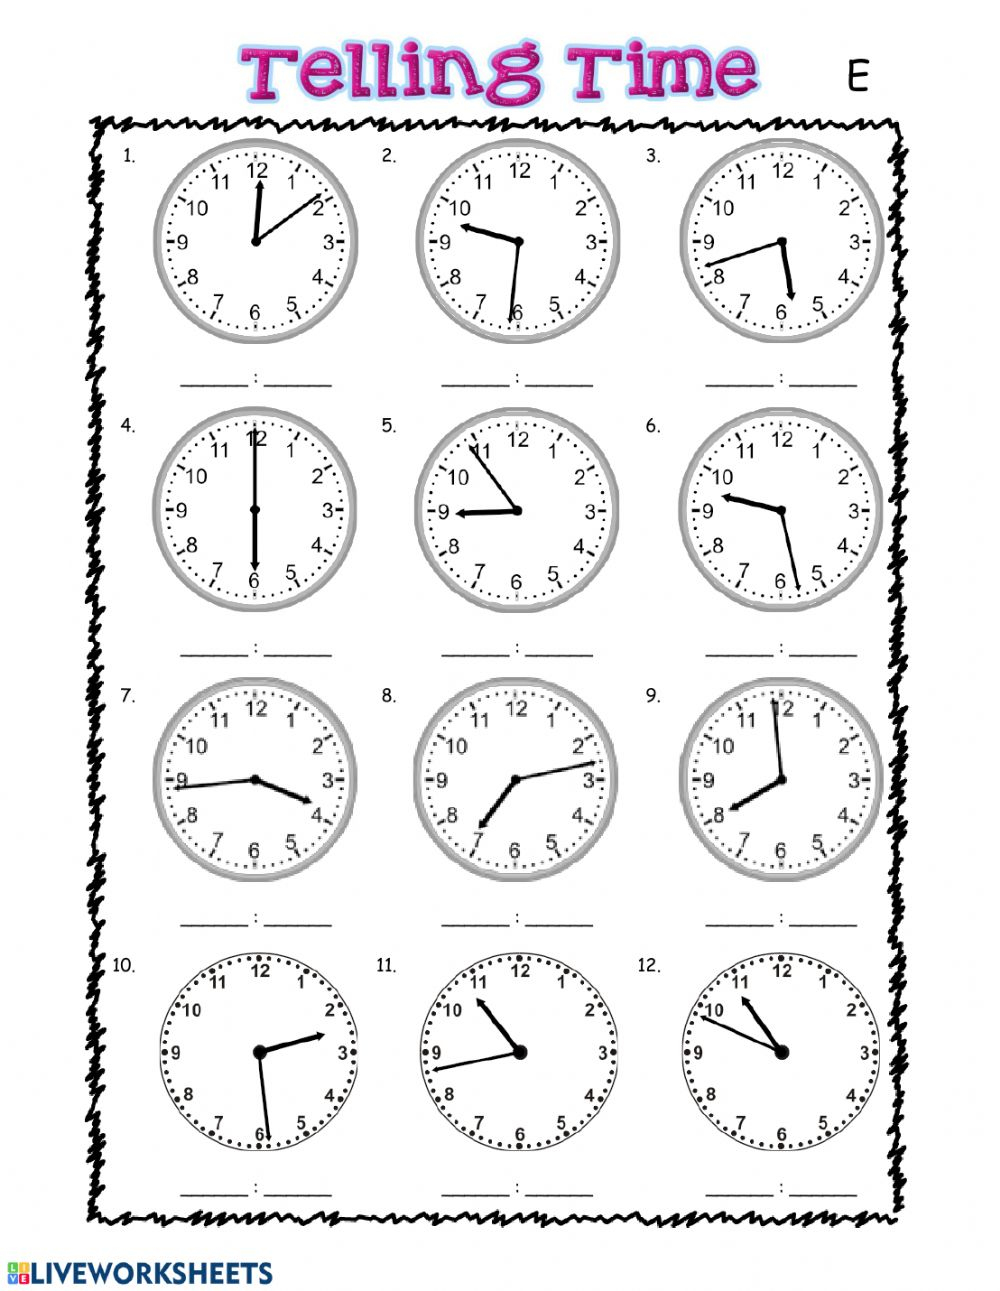 medium resolution of Telling Time interactive exercise for grade 3